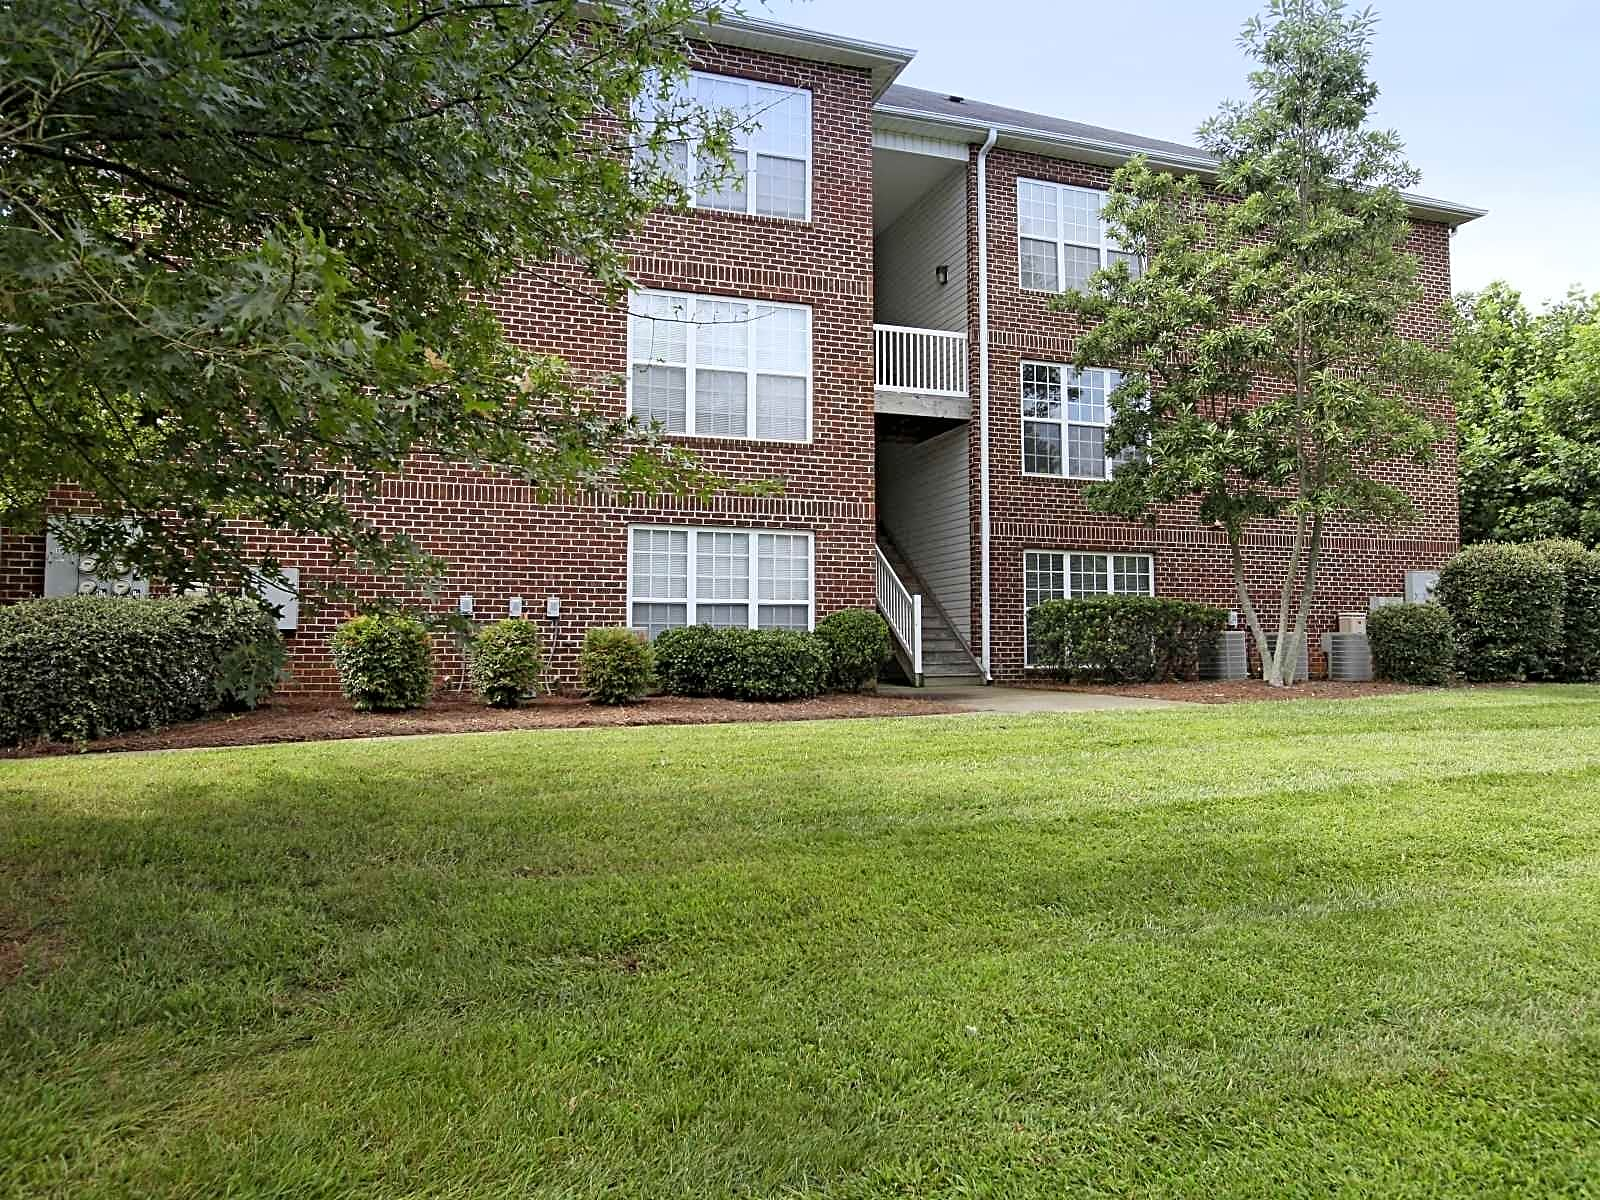 3 Bedroom Houses For Rent In Winston Salem Nc Welcome Winston Salem Journalnow Classified Readers